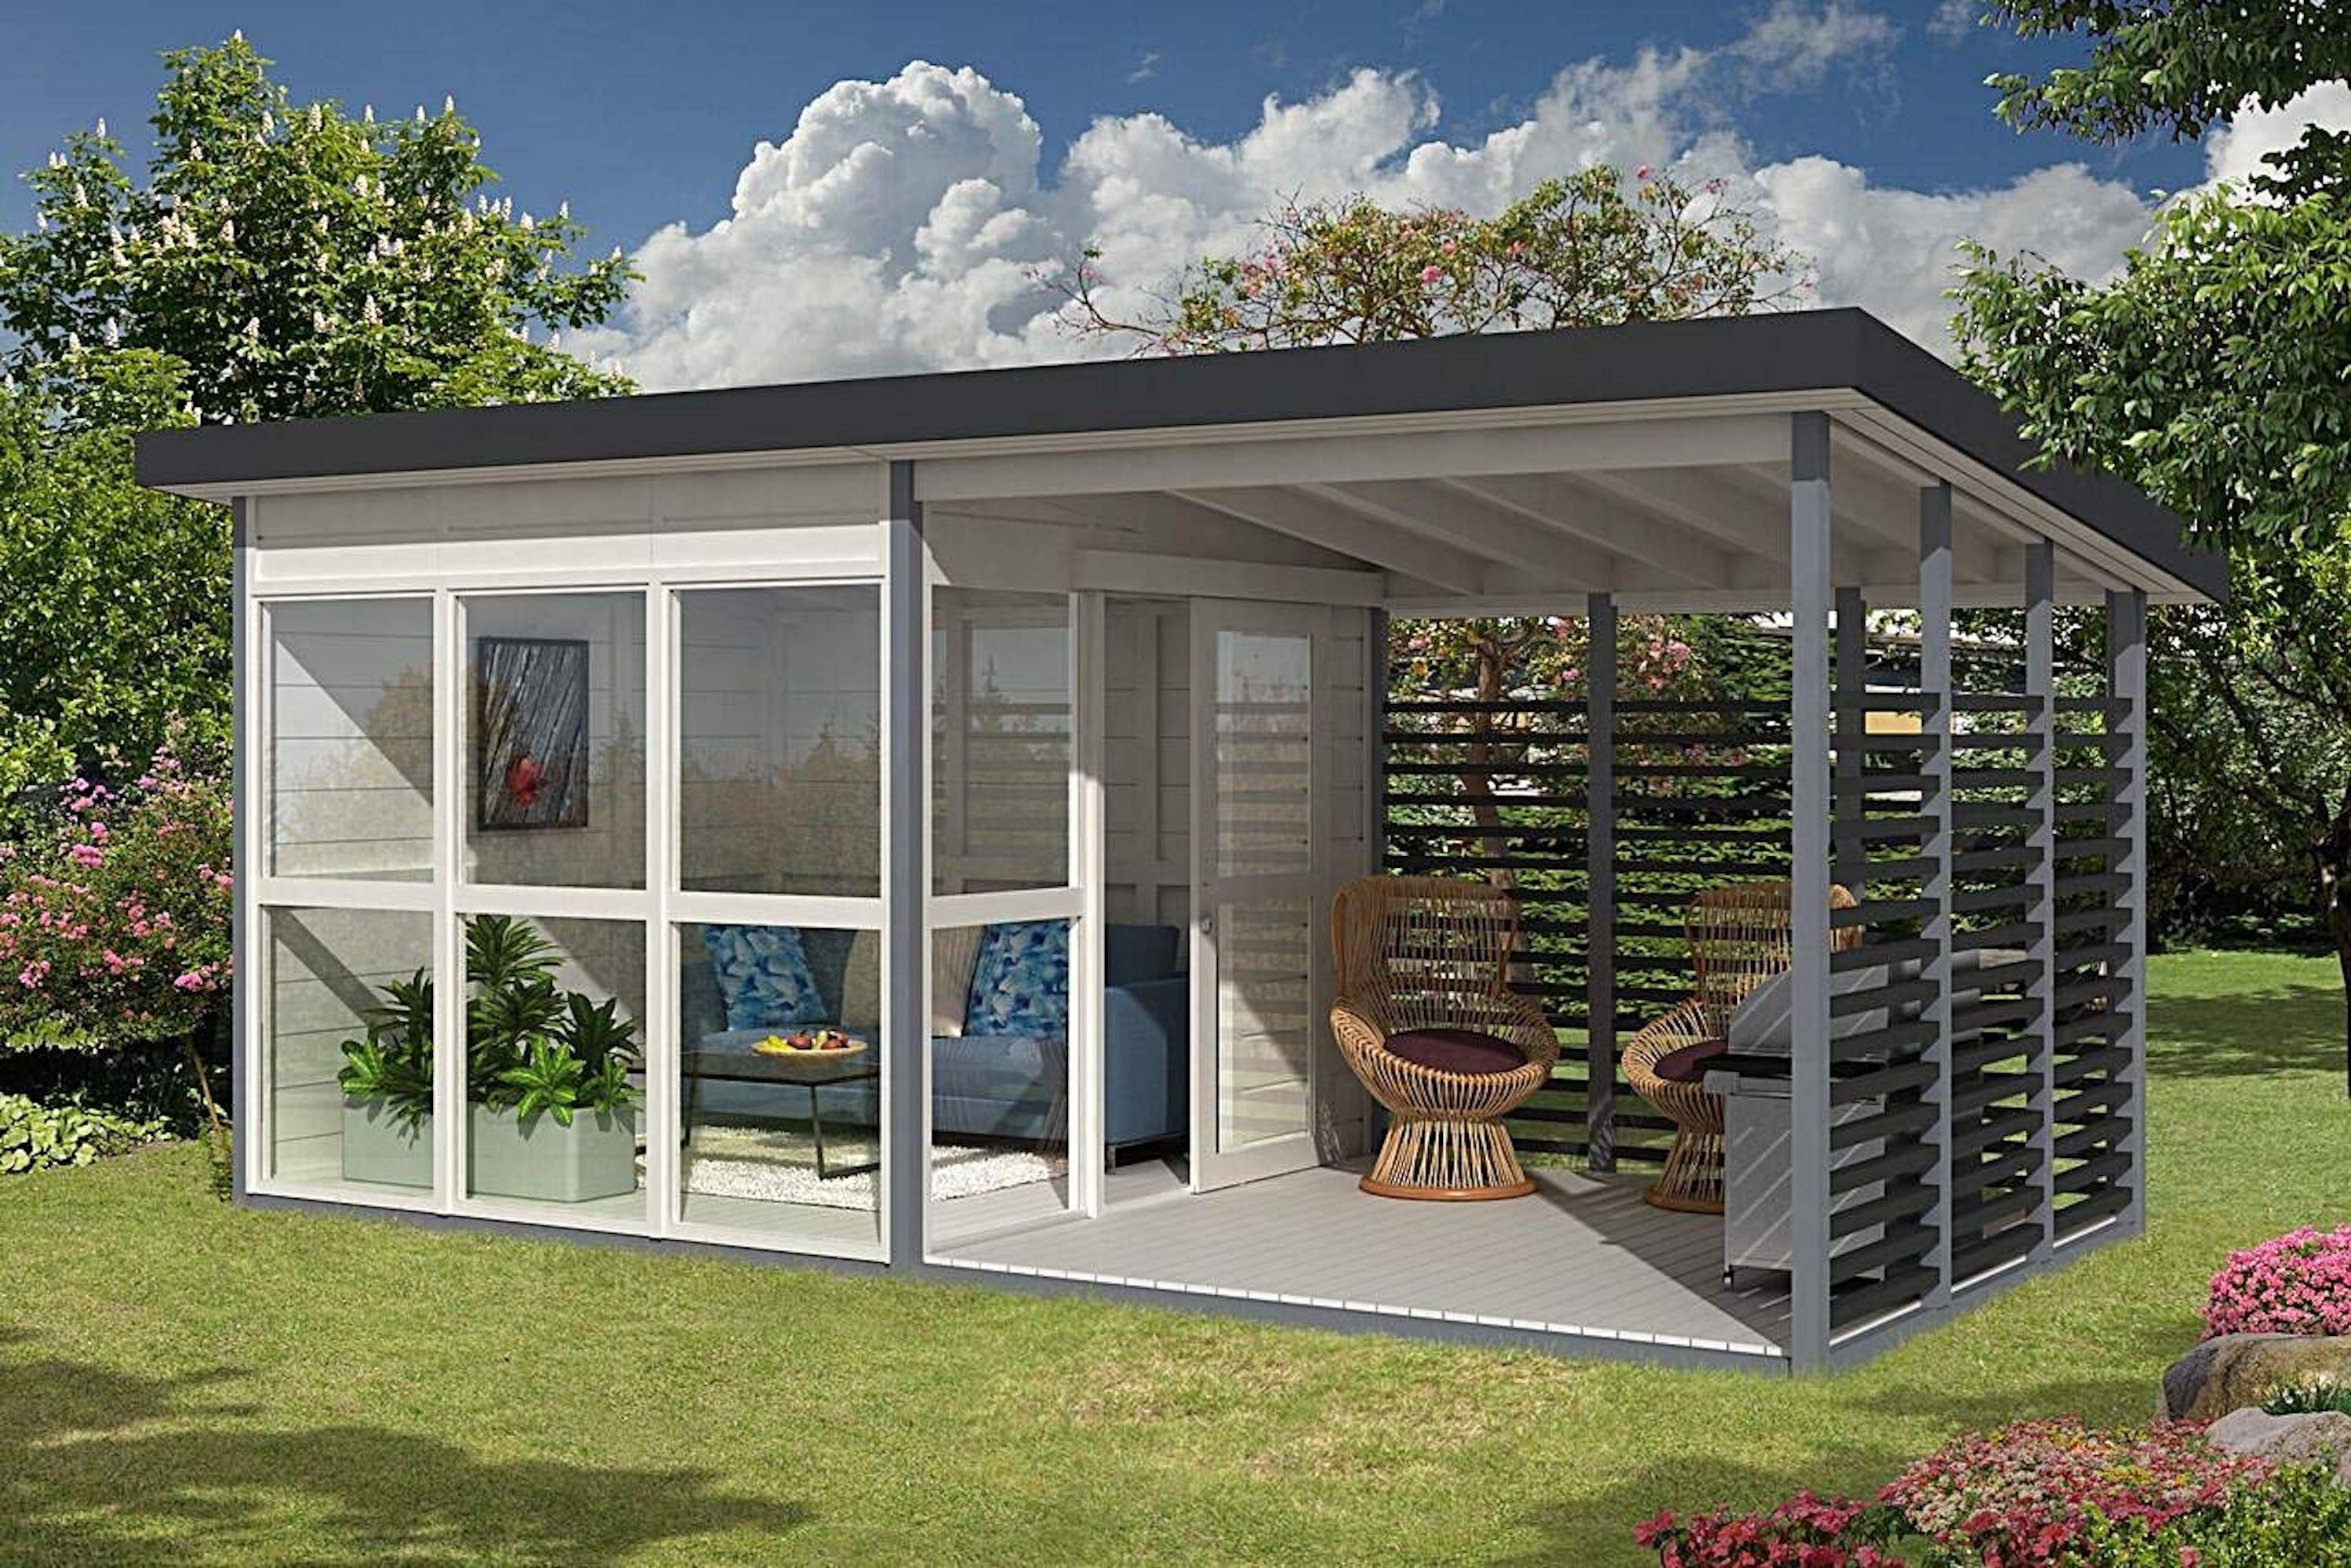 Astonishing Amazons Viral 7K Tiny House Is Back In Stock Curbed Home Interior And Landscaping Ologienasavecom